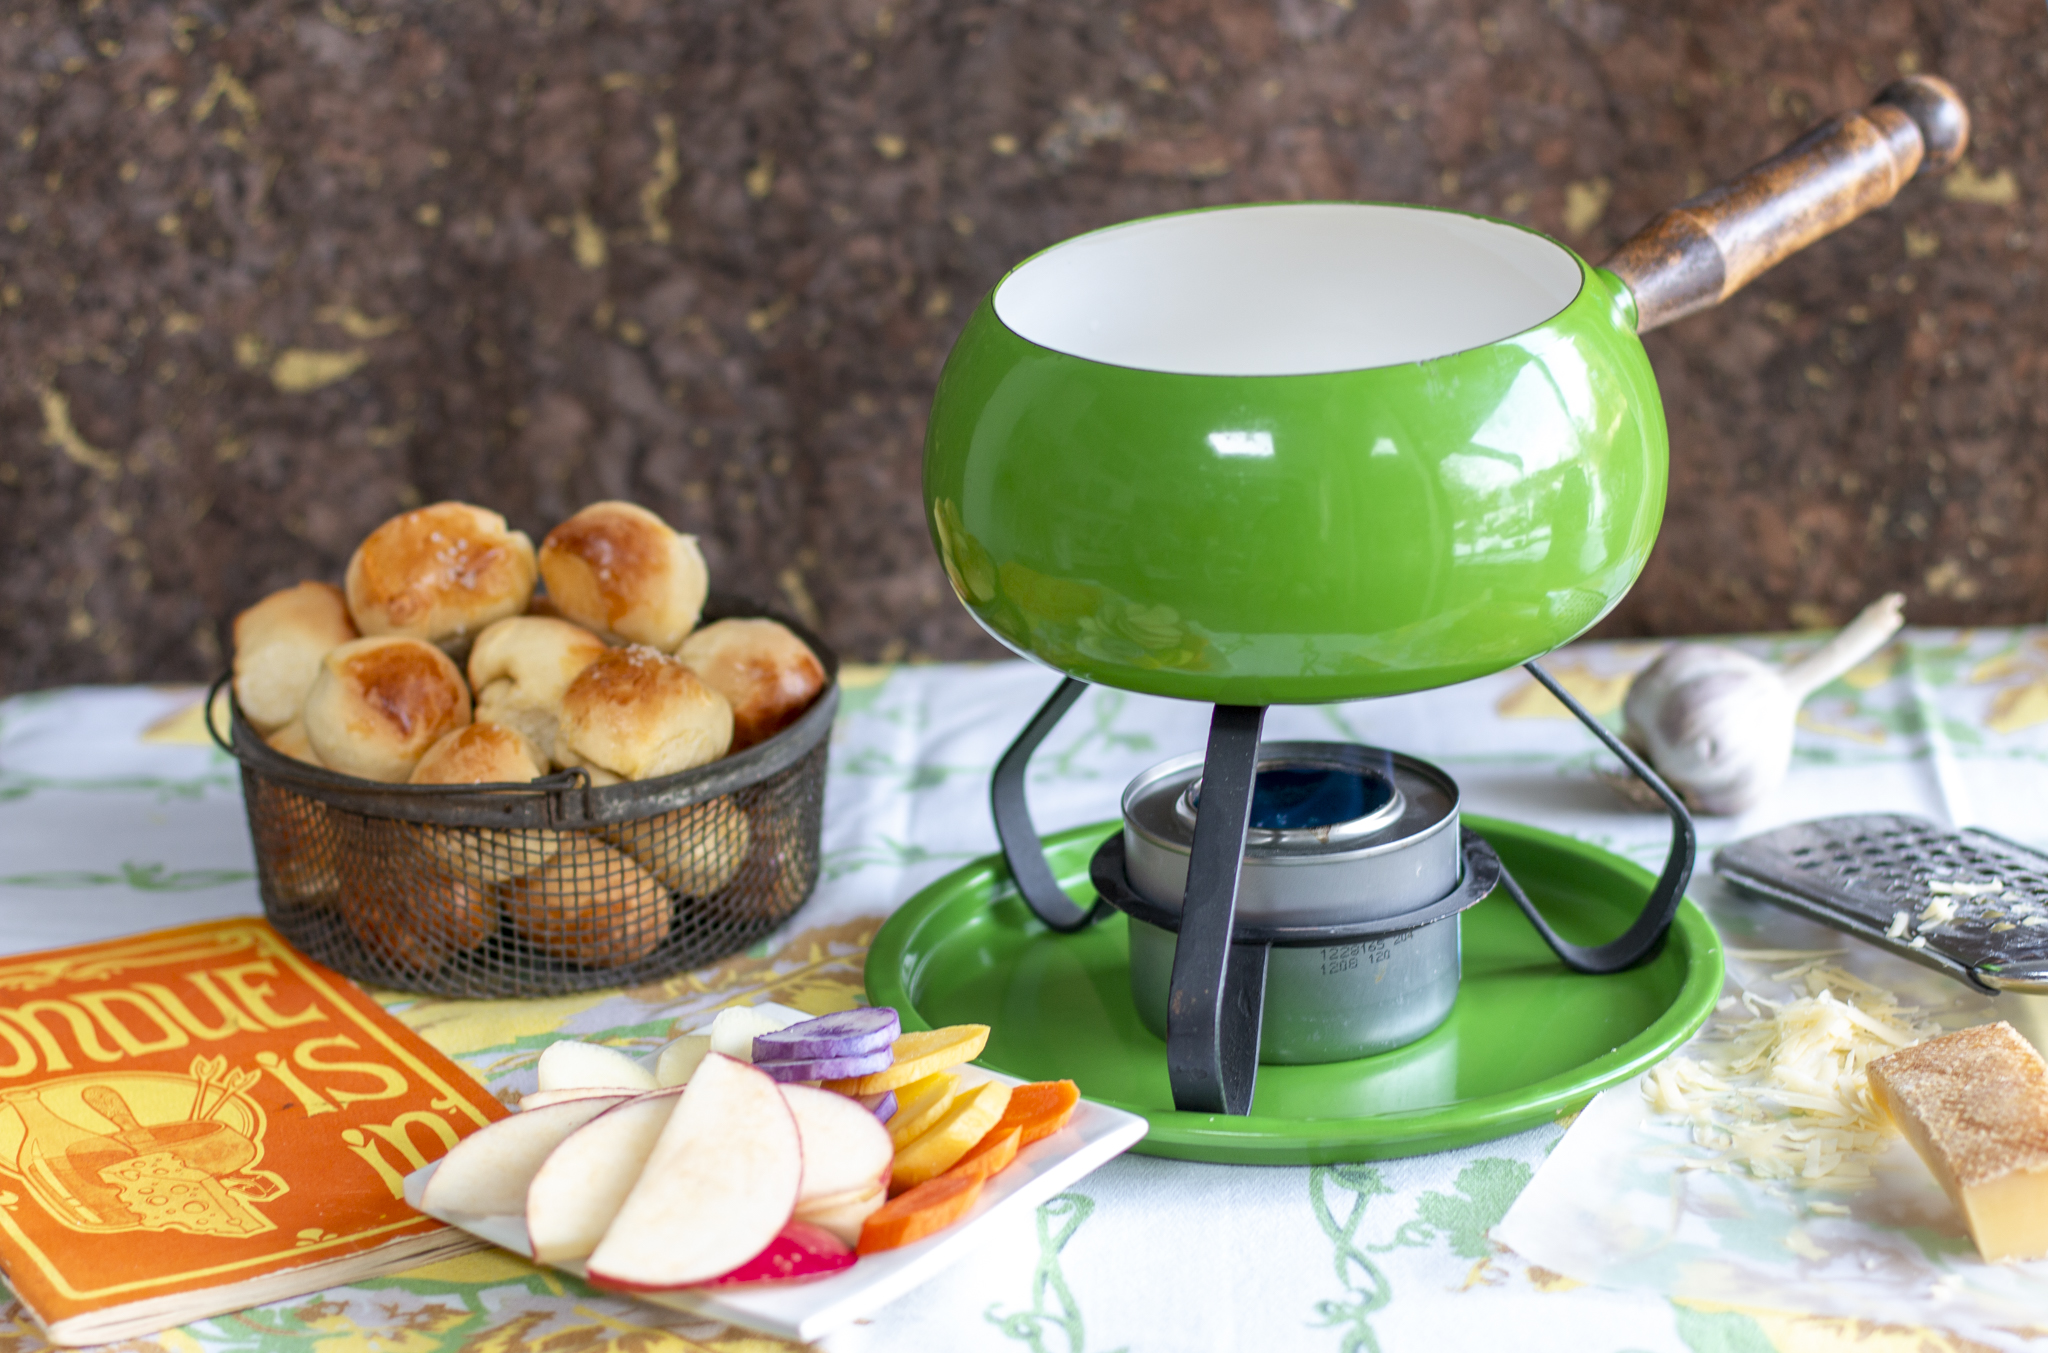 my vintage apple-green 70's pot with my Cheesy Swiss Fondue with Garlic & Chives